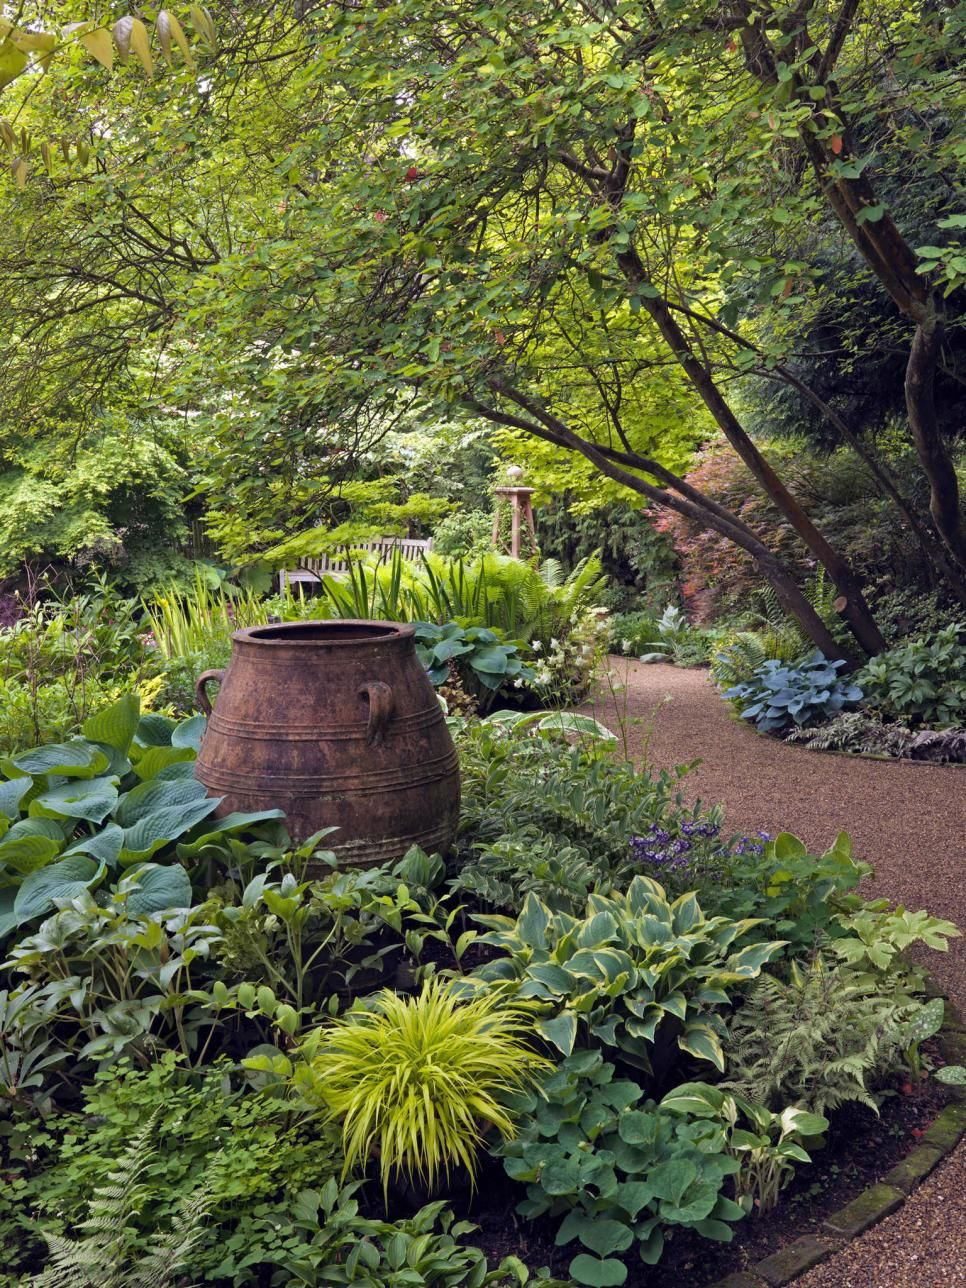 Shade Garden Design Ideas cold climate shade garden plan Turn A Shady Spot Into A Lush Thriving Garden With Plant Picks And Design Ideas